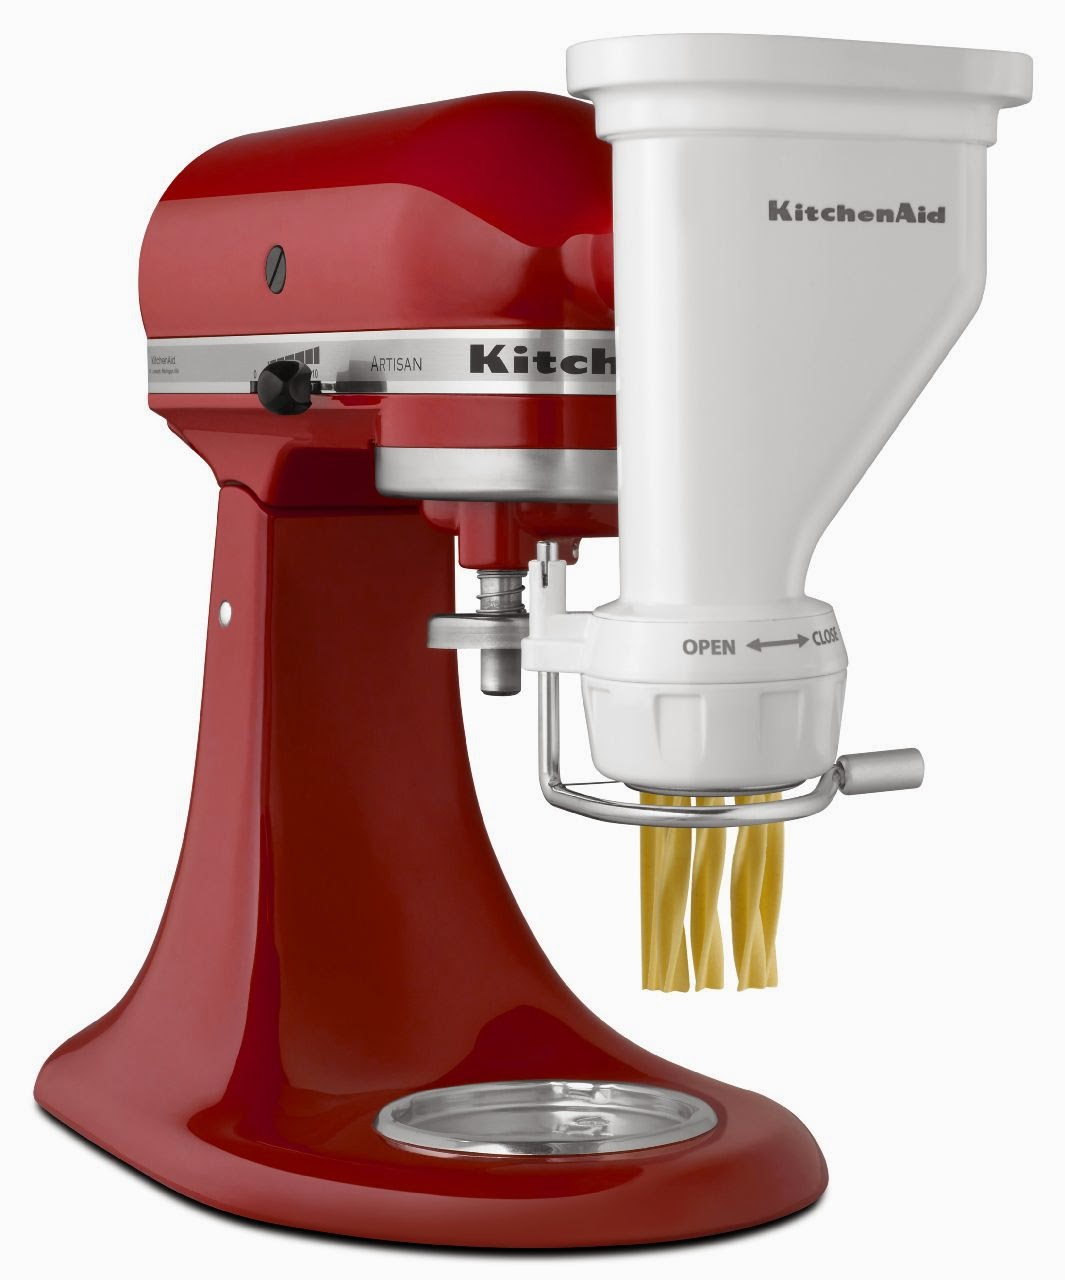 Kitchenaid Pasta Machine Attachment family feedbag: best christmas gifts giveaway - kitchenaid attachments